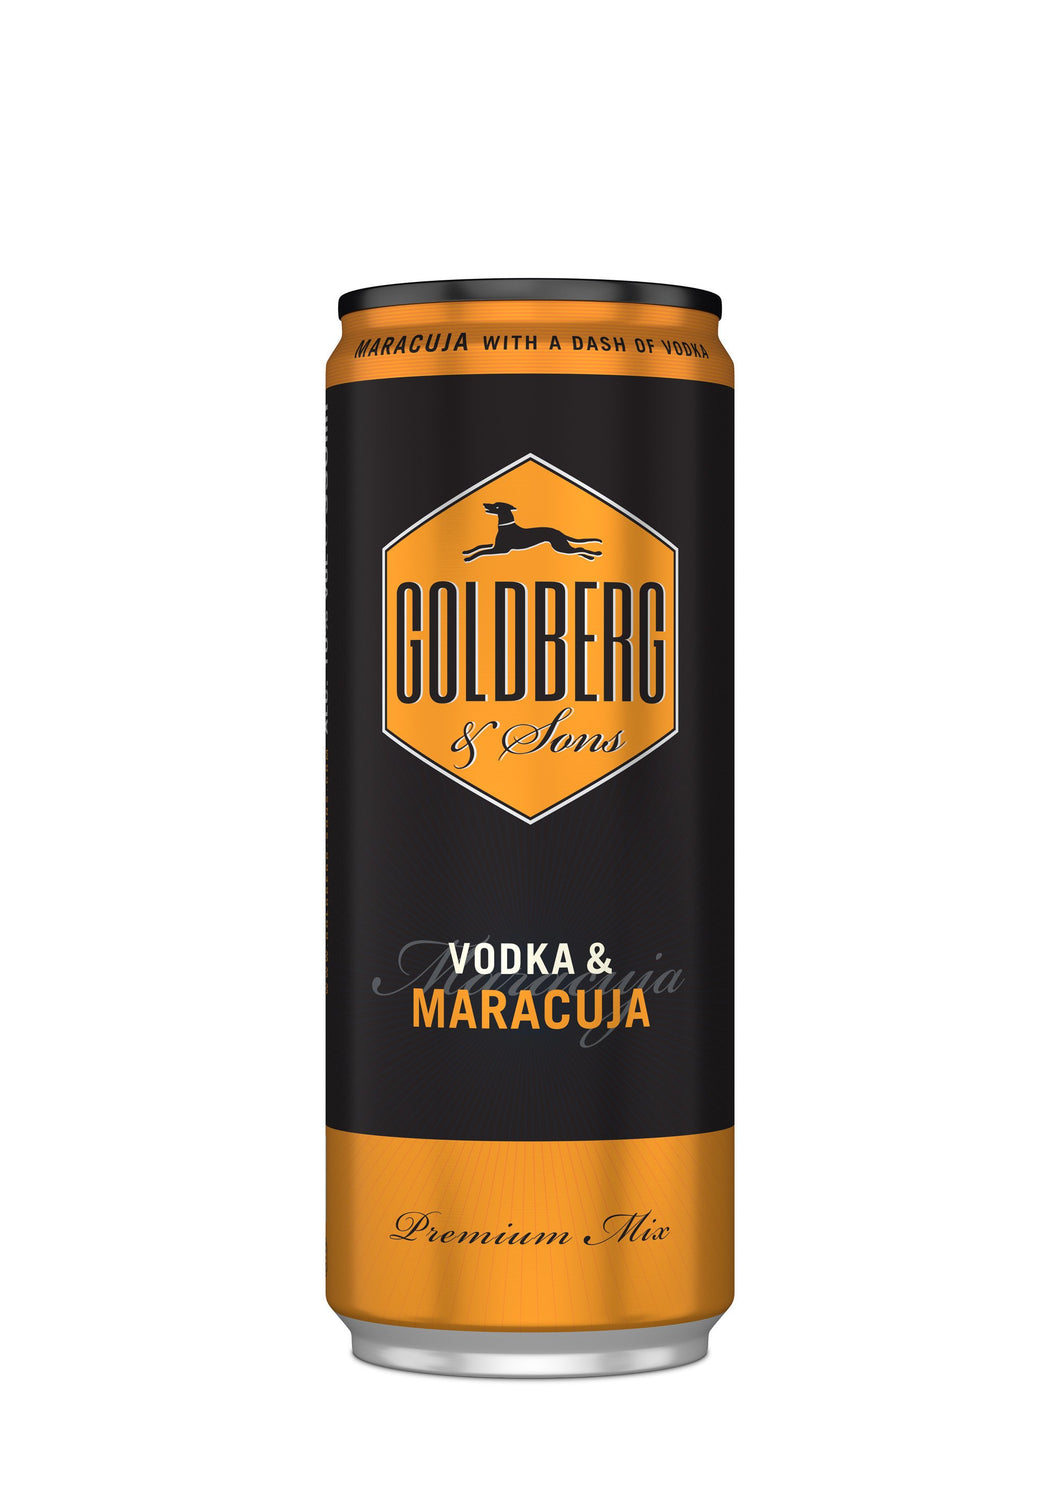 finespirits-Goldberg Vodka&Maracuja Dose 12x0,33l